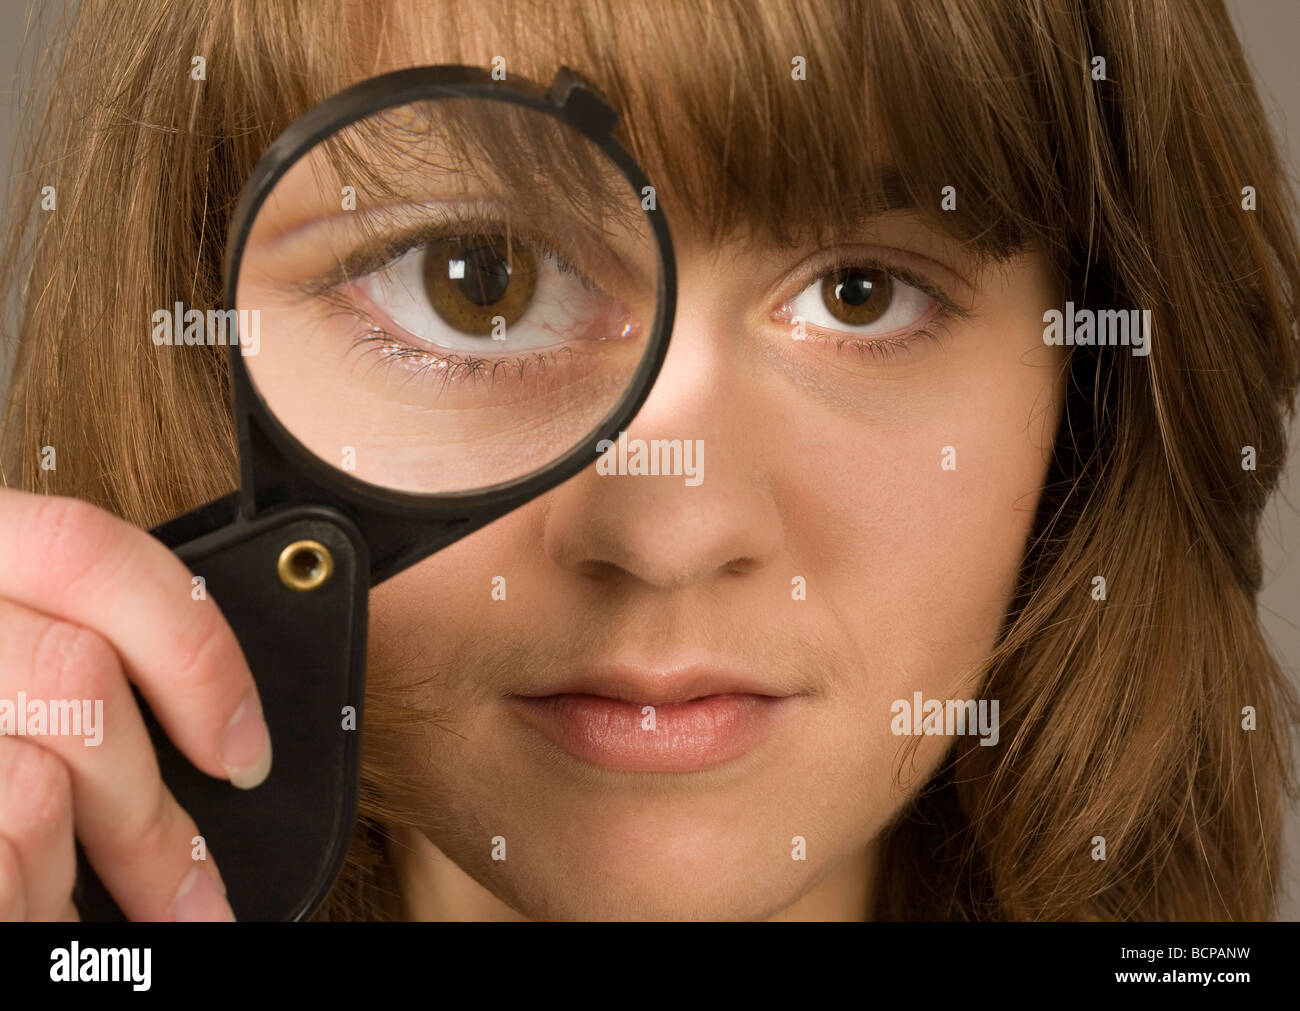 A young woman in her twenties looking through a magnifying glass - Stock Image